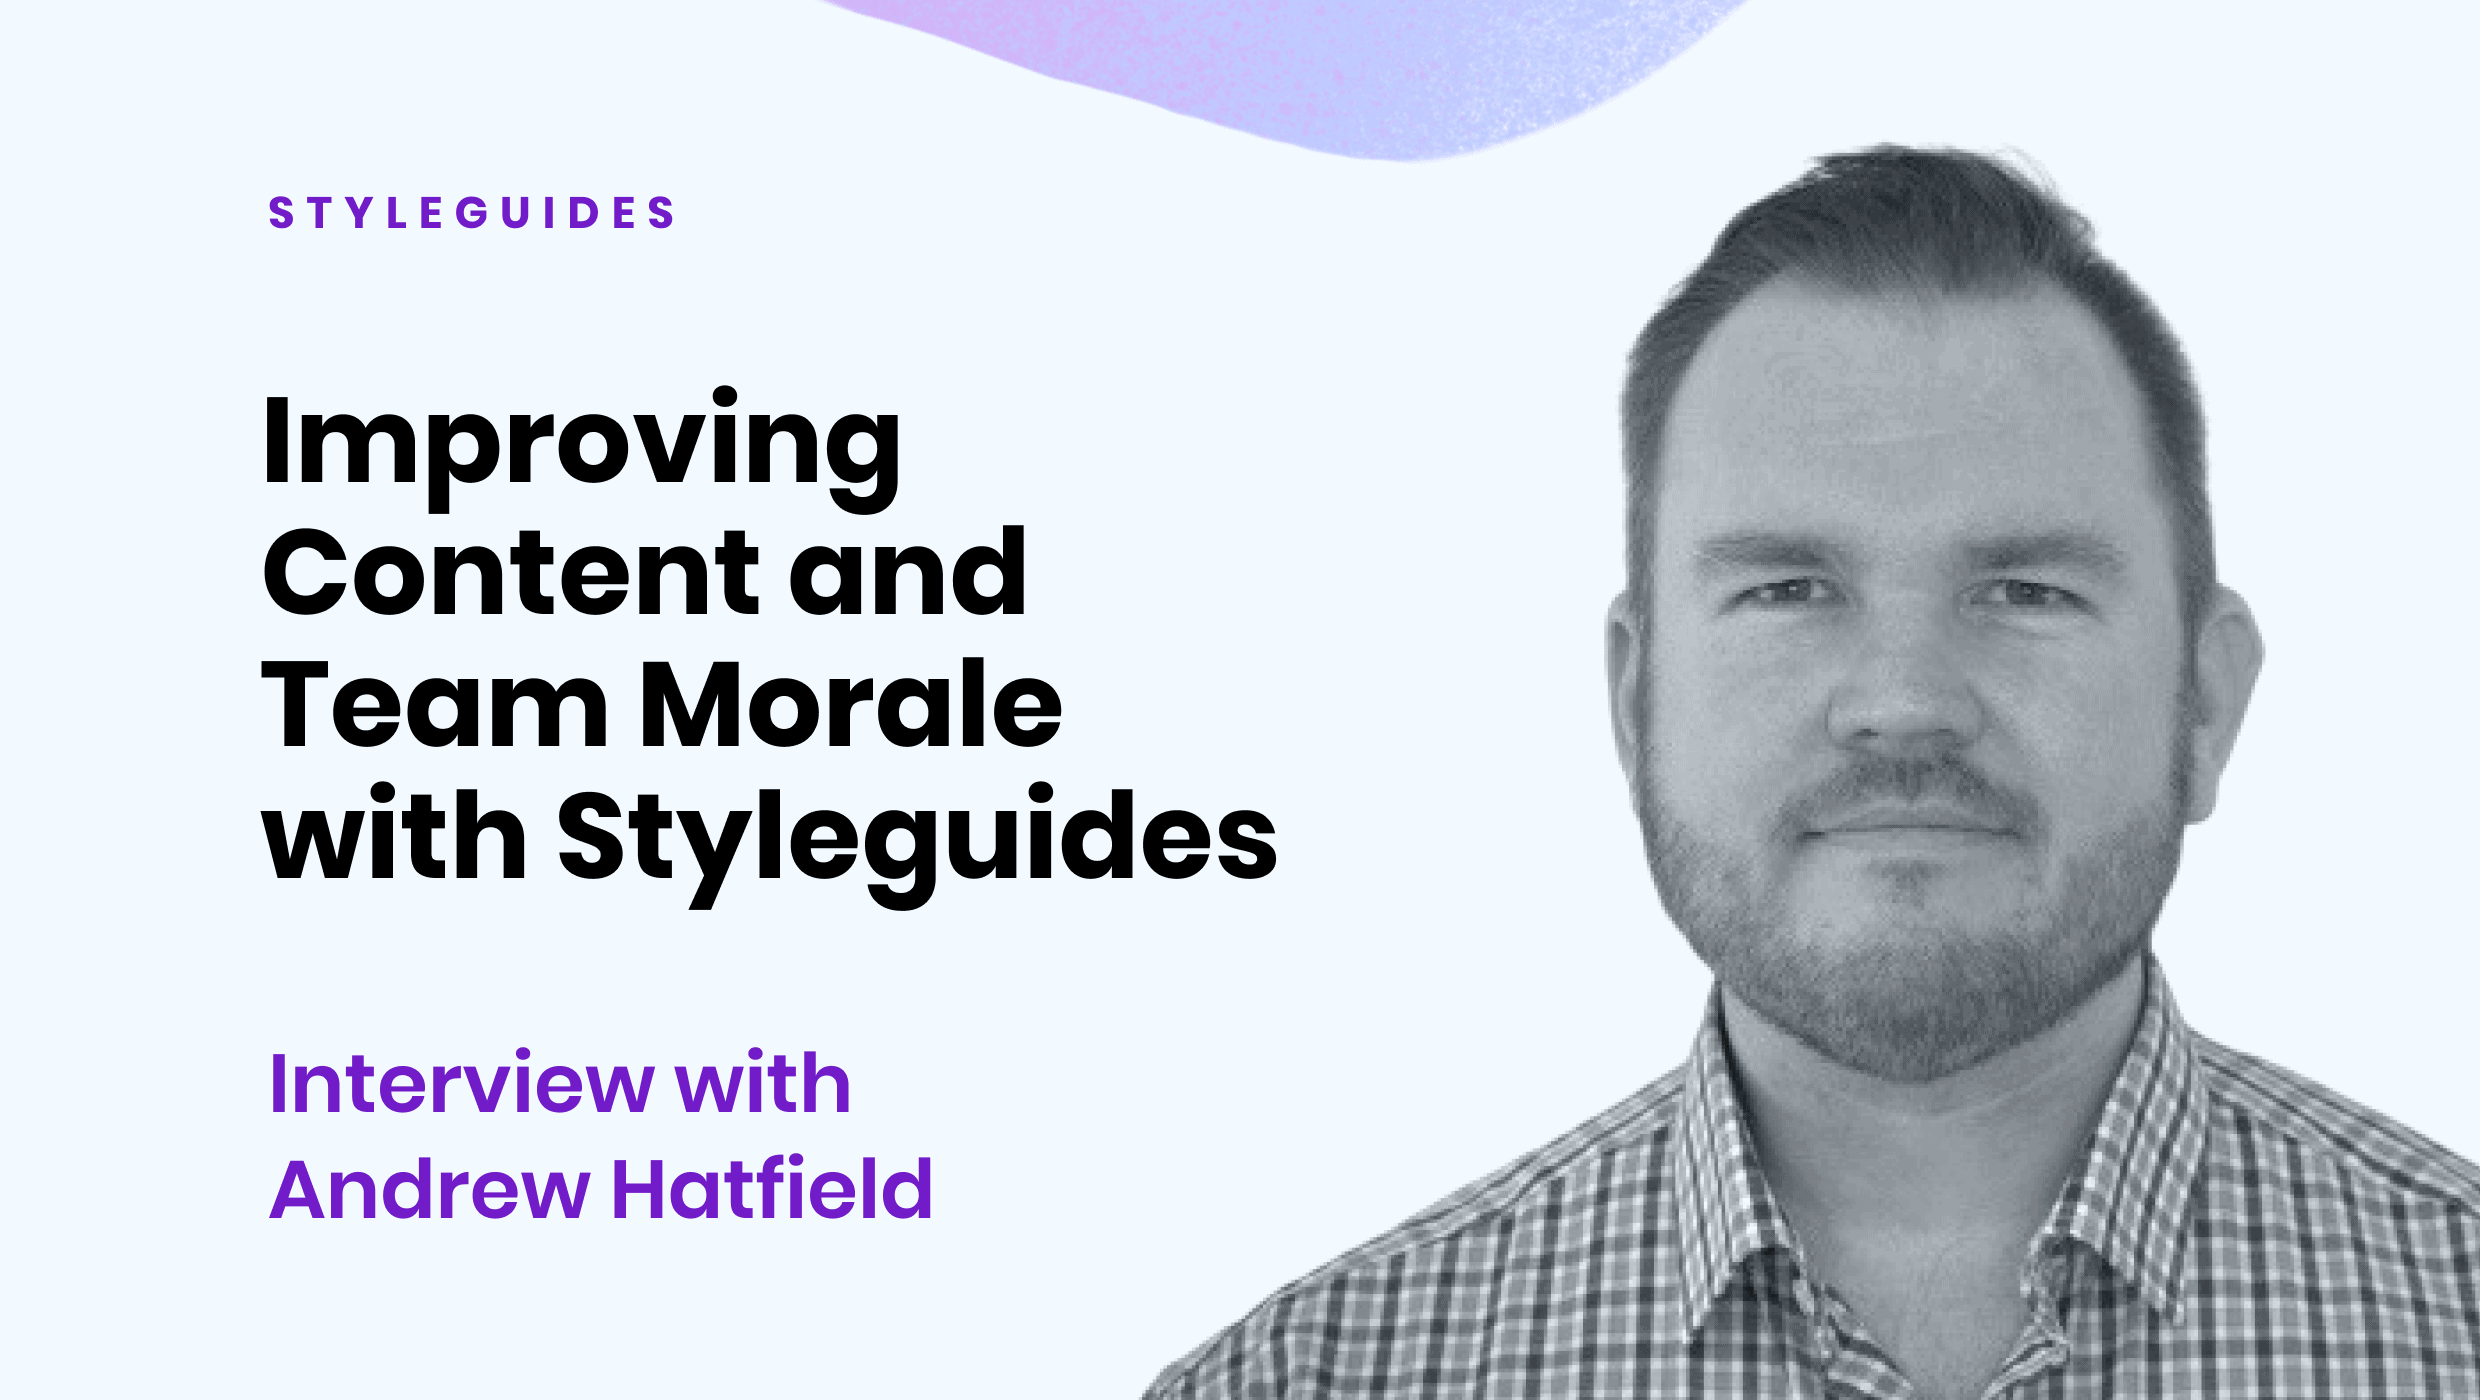 Improving marketing content and team morale with styleguides: interview with Andrew Hatfield